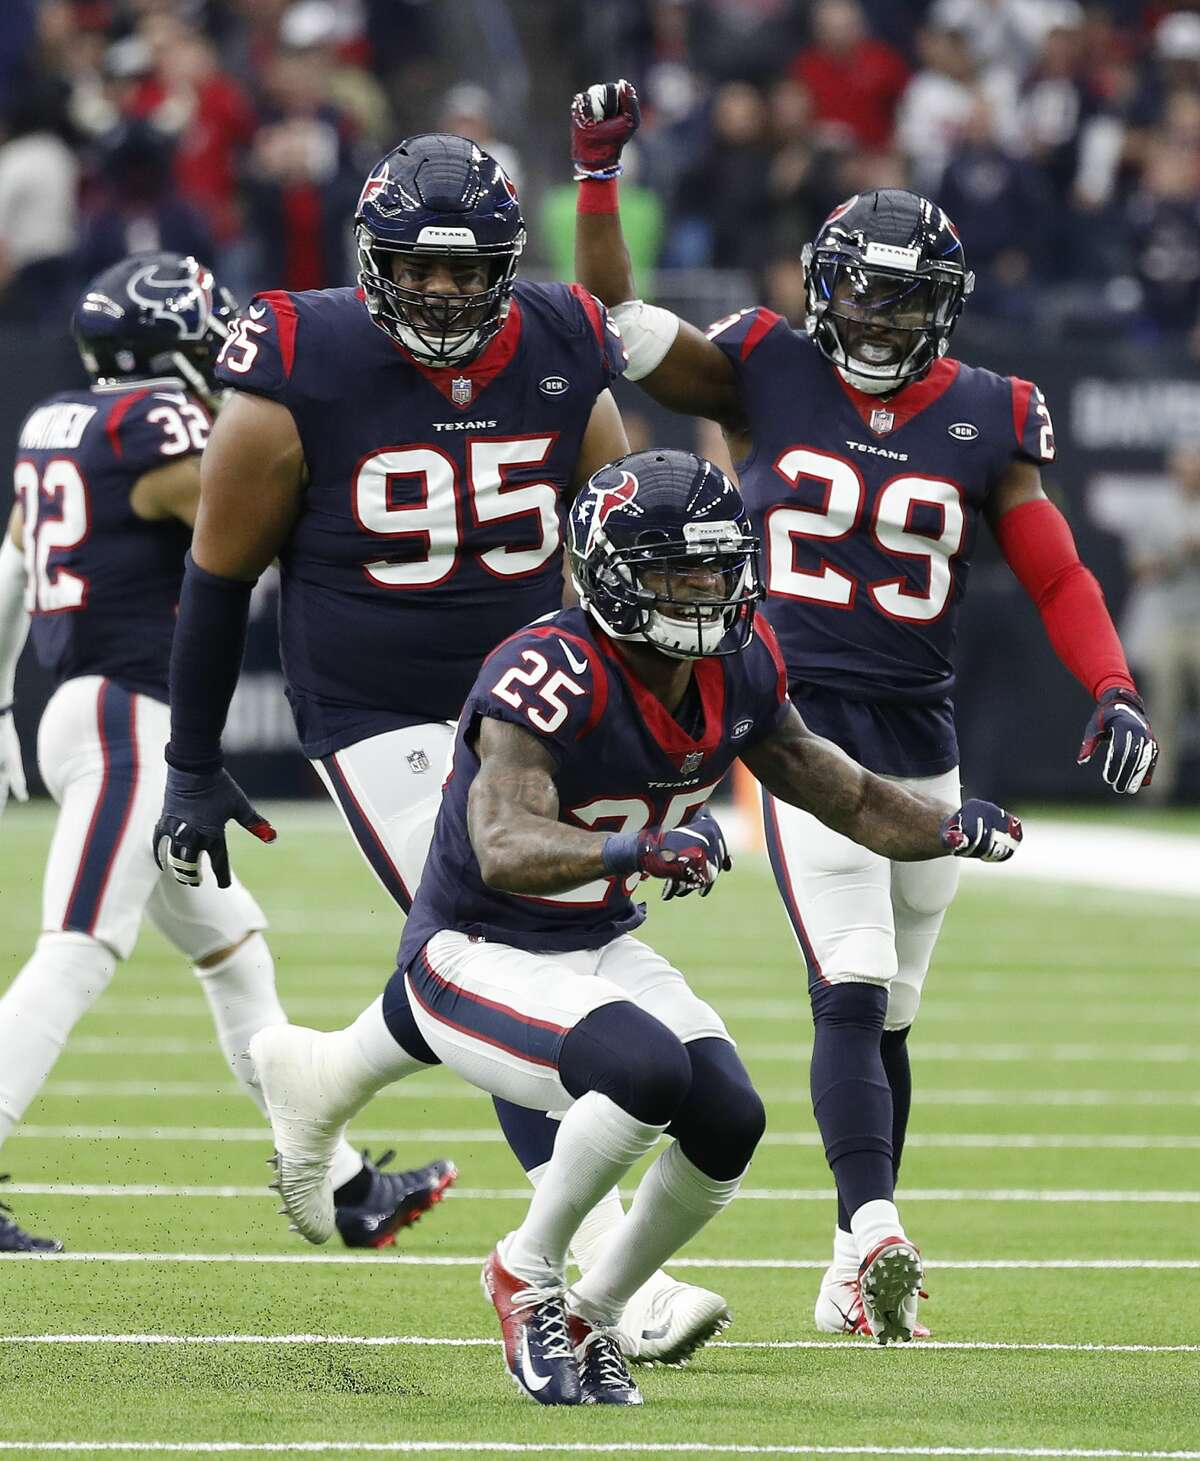 Houston Texans strong safety Kareem Jackson (25) reacts after bringing down Jacksonville Jaguars running back Carlos Hyde (34) for a fourth-down during the third quarter of an NFL football game at NRG Stadium, Sunday, Dec. 30, 2018, in Houston.